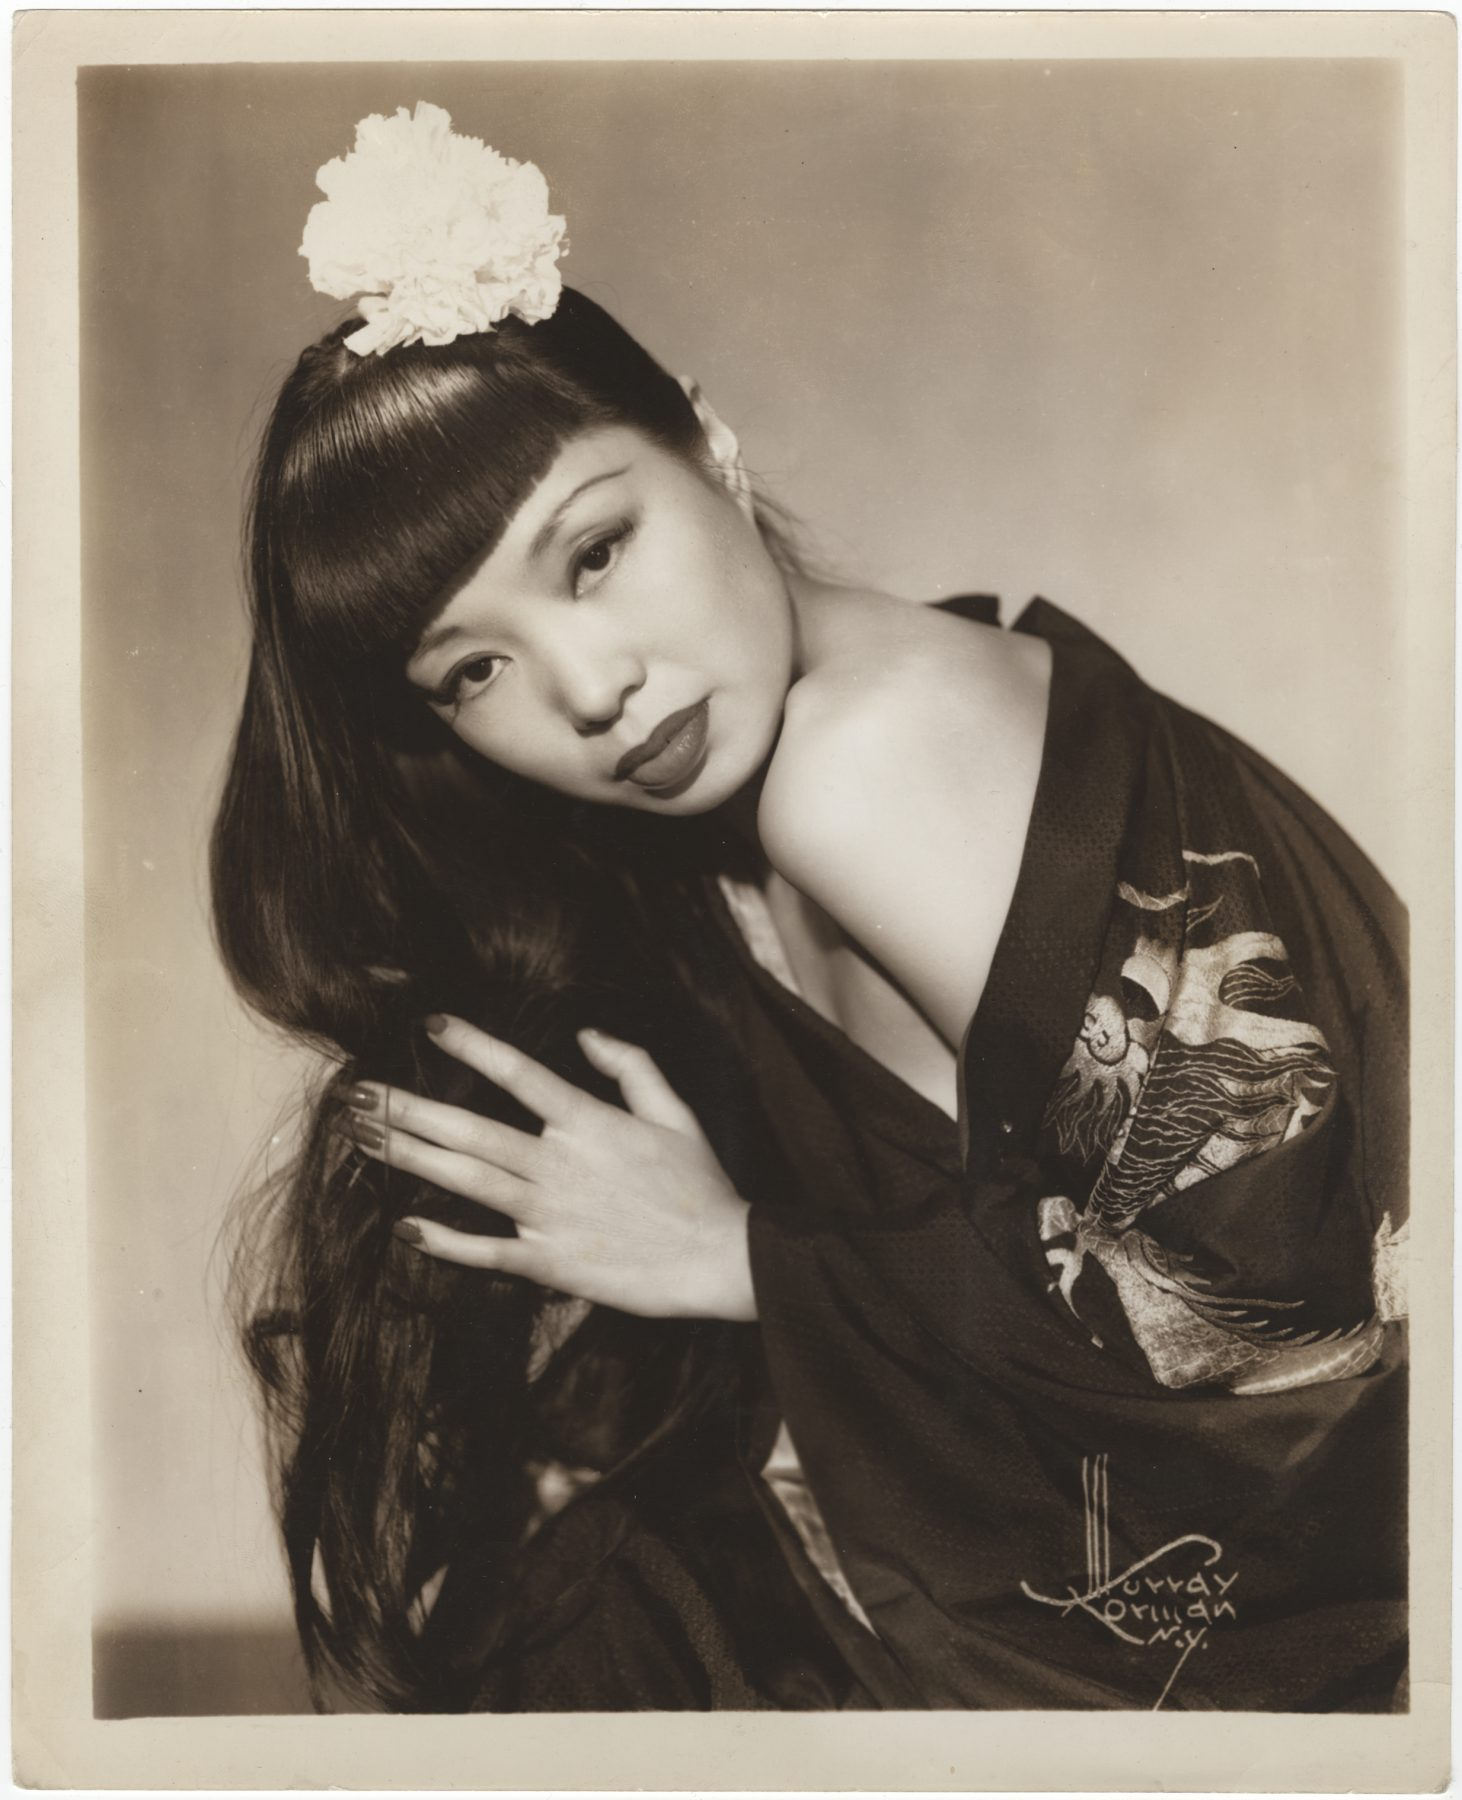 17 May 2019 Posted. Jadin Wong at Leon & Eddi's NY in 1941, Courtesy of Wally Wong, In memory of Jadin Wong, Museum of Chinese in America (MOCA) Collection. 1941年黄美玉(Jadin Wong)在纽约Leon & Eddi's夜总会,Wally Wong捐赠,纪念Jadin Wong,美国华人博物馆(MOCA)馆藏